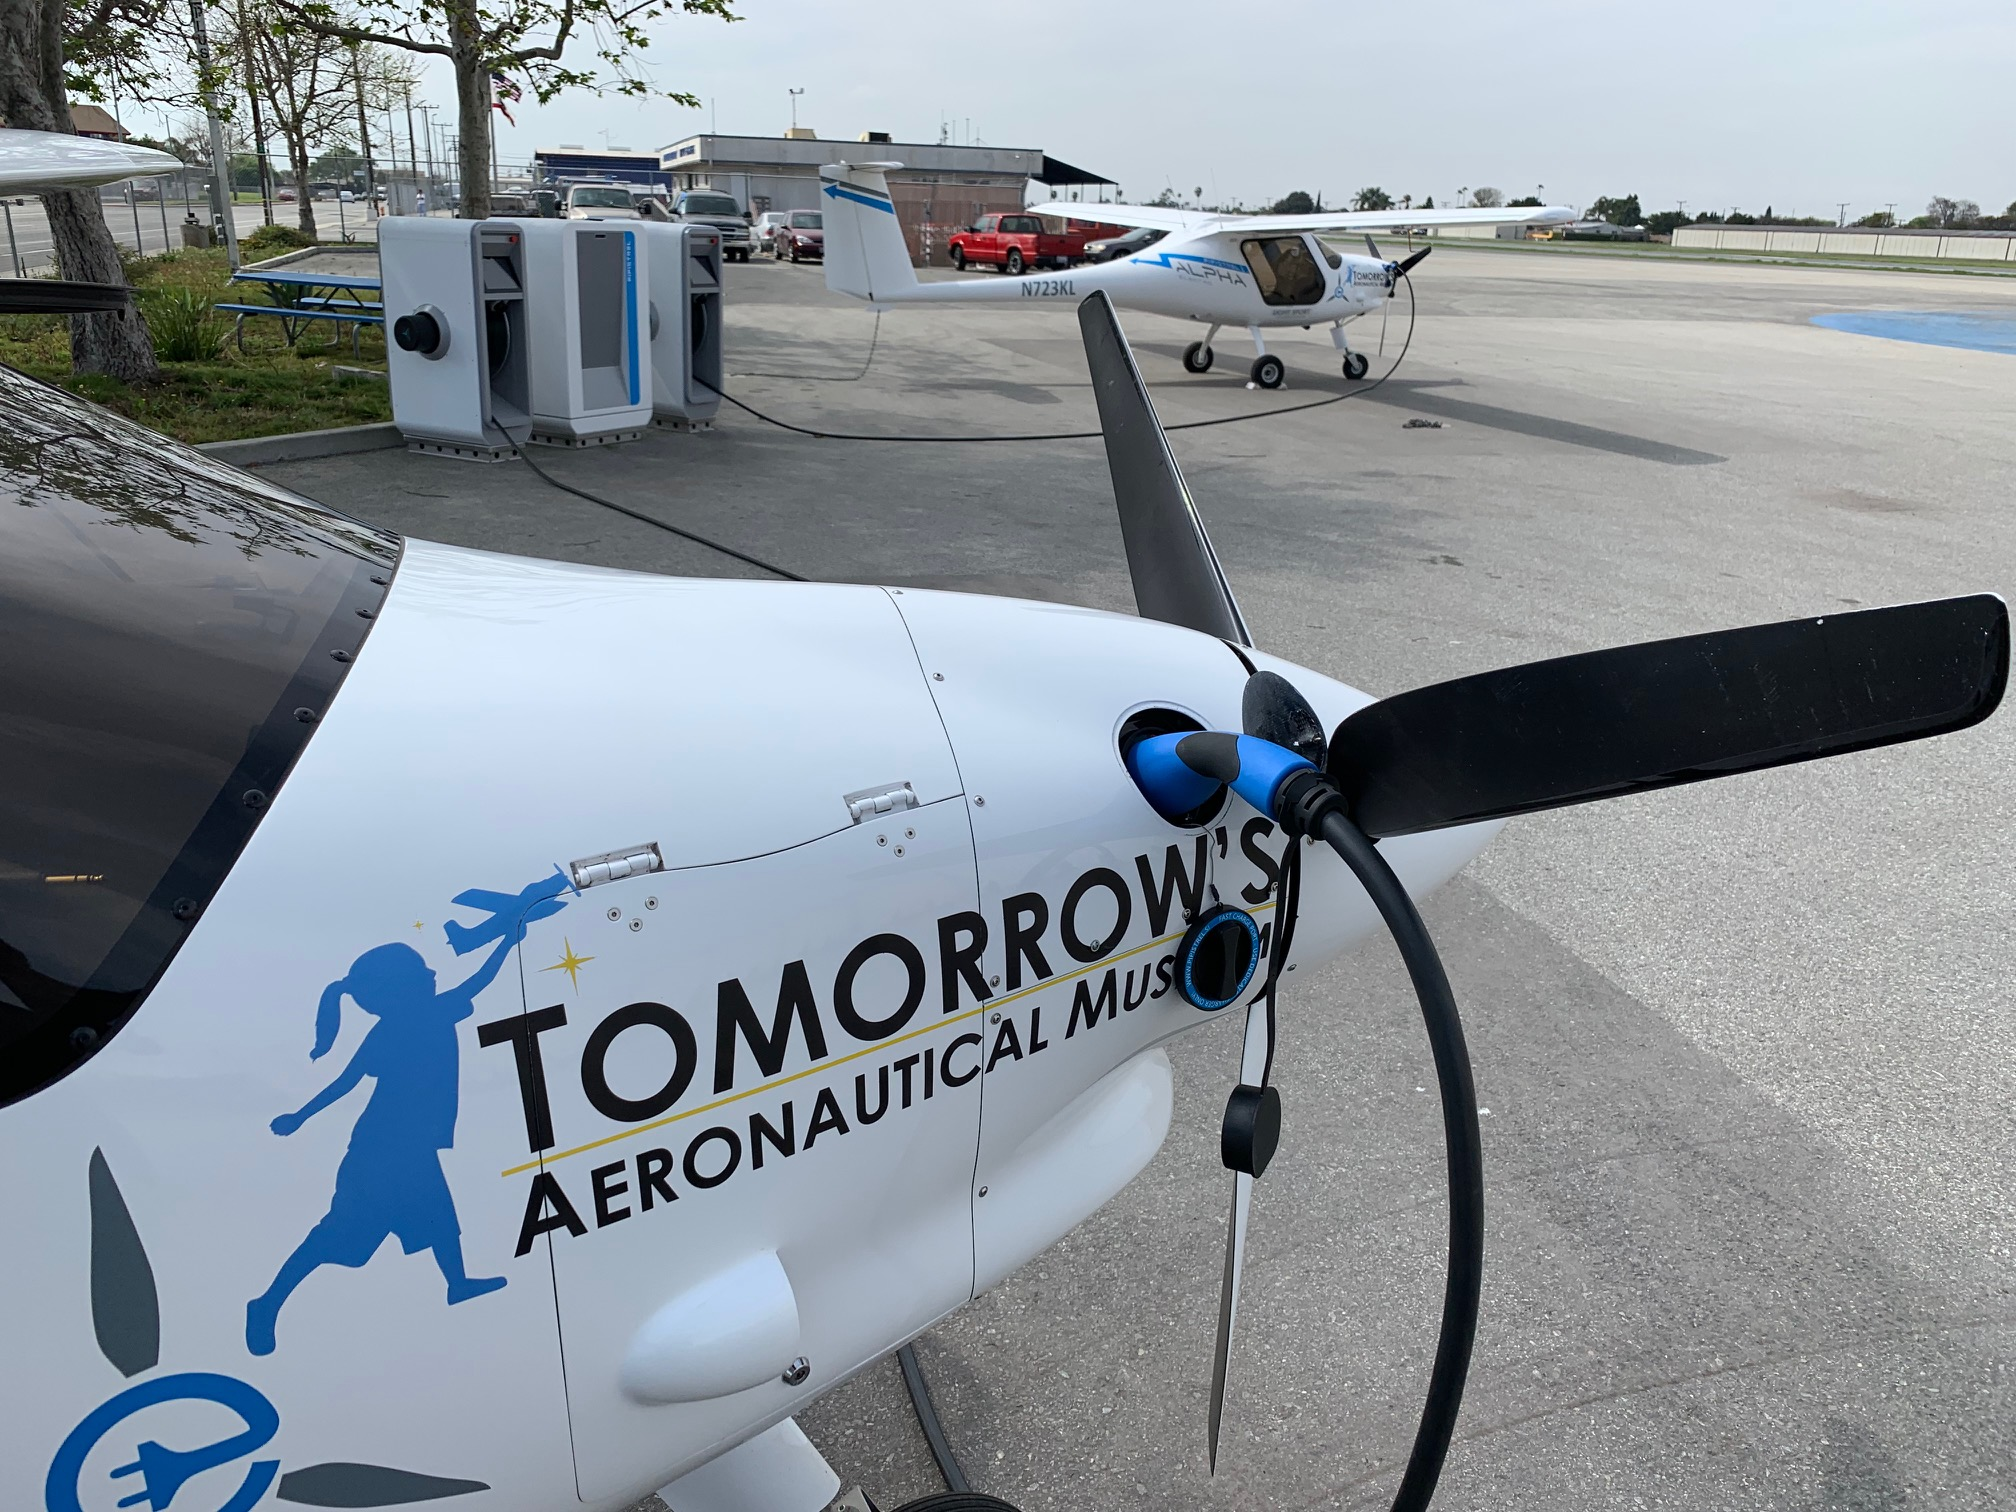 Tomorrow's Aeronautical Museum Pipistrel Alpha Electro aircraft